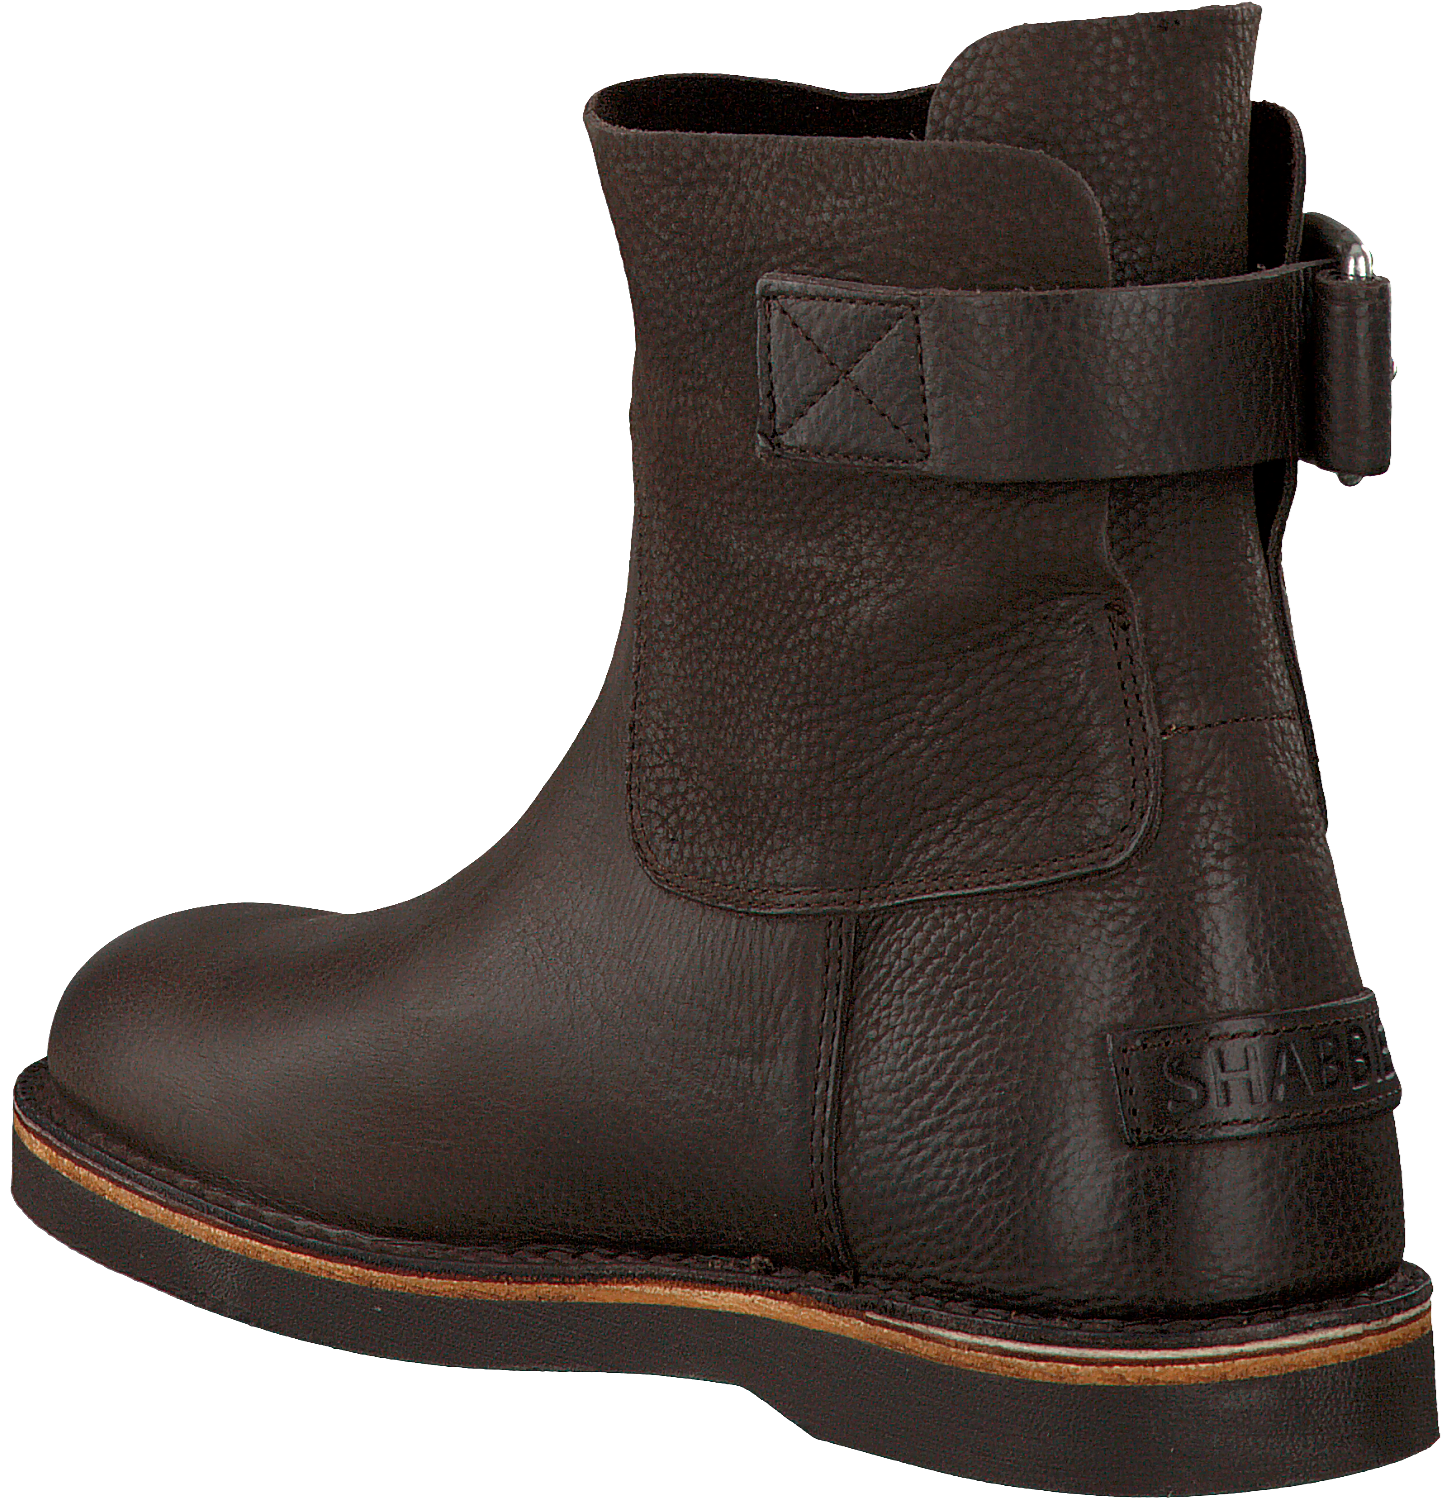 Shabbies Brun Bottines 181020020 ANmRYTm